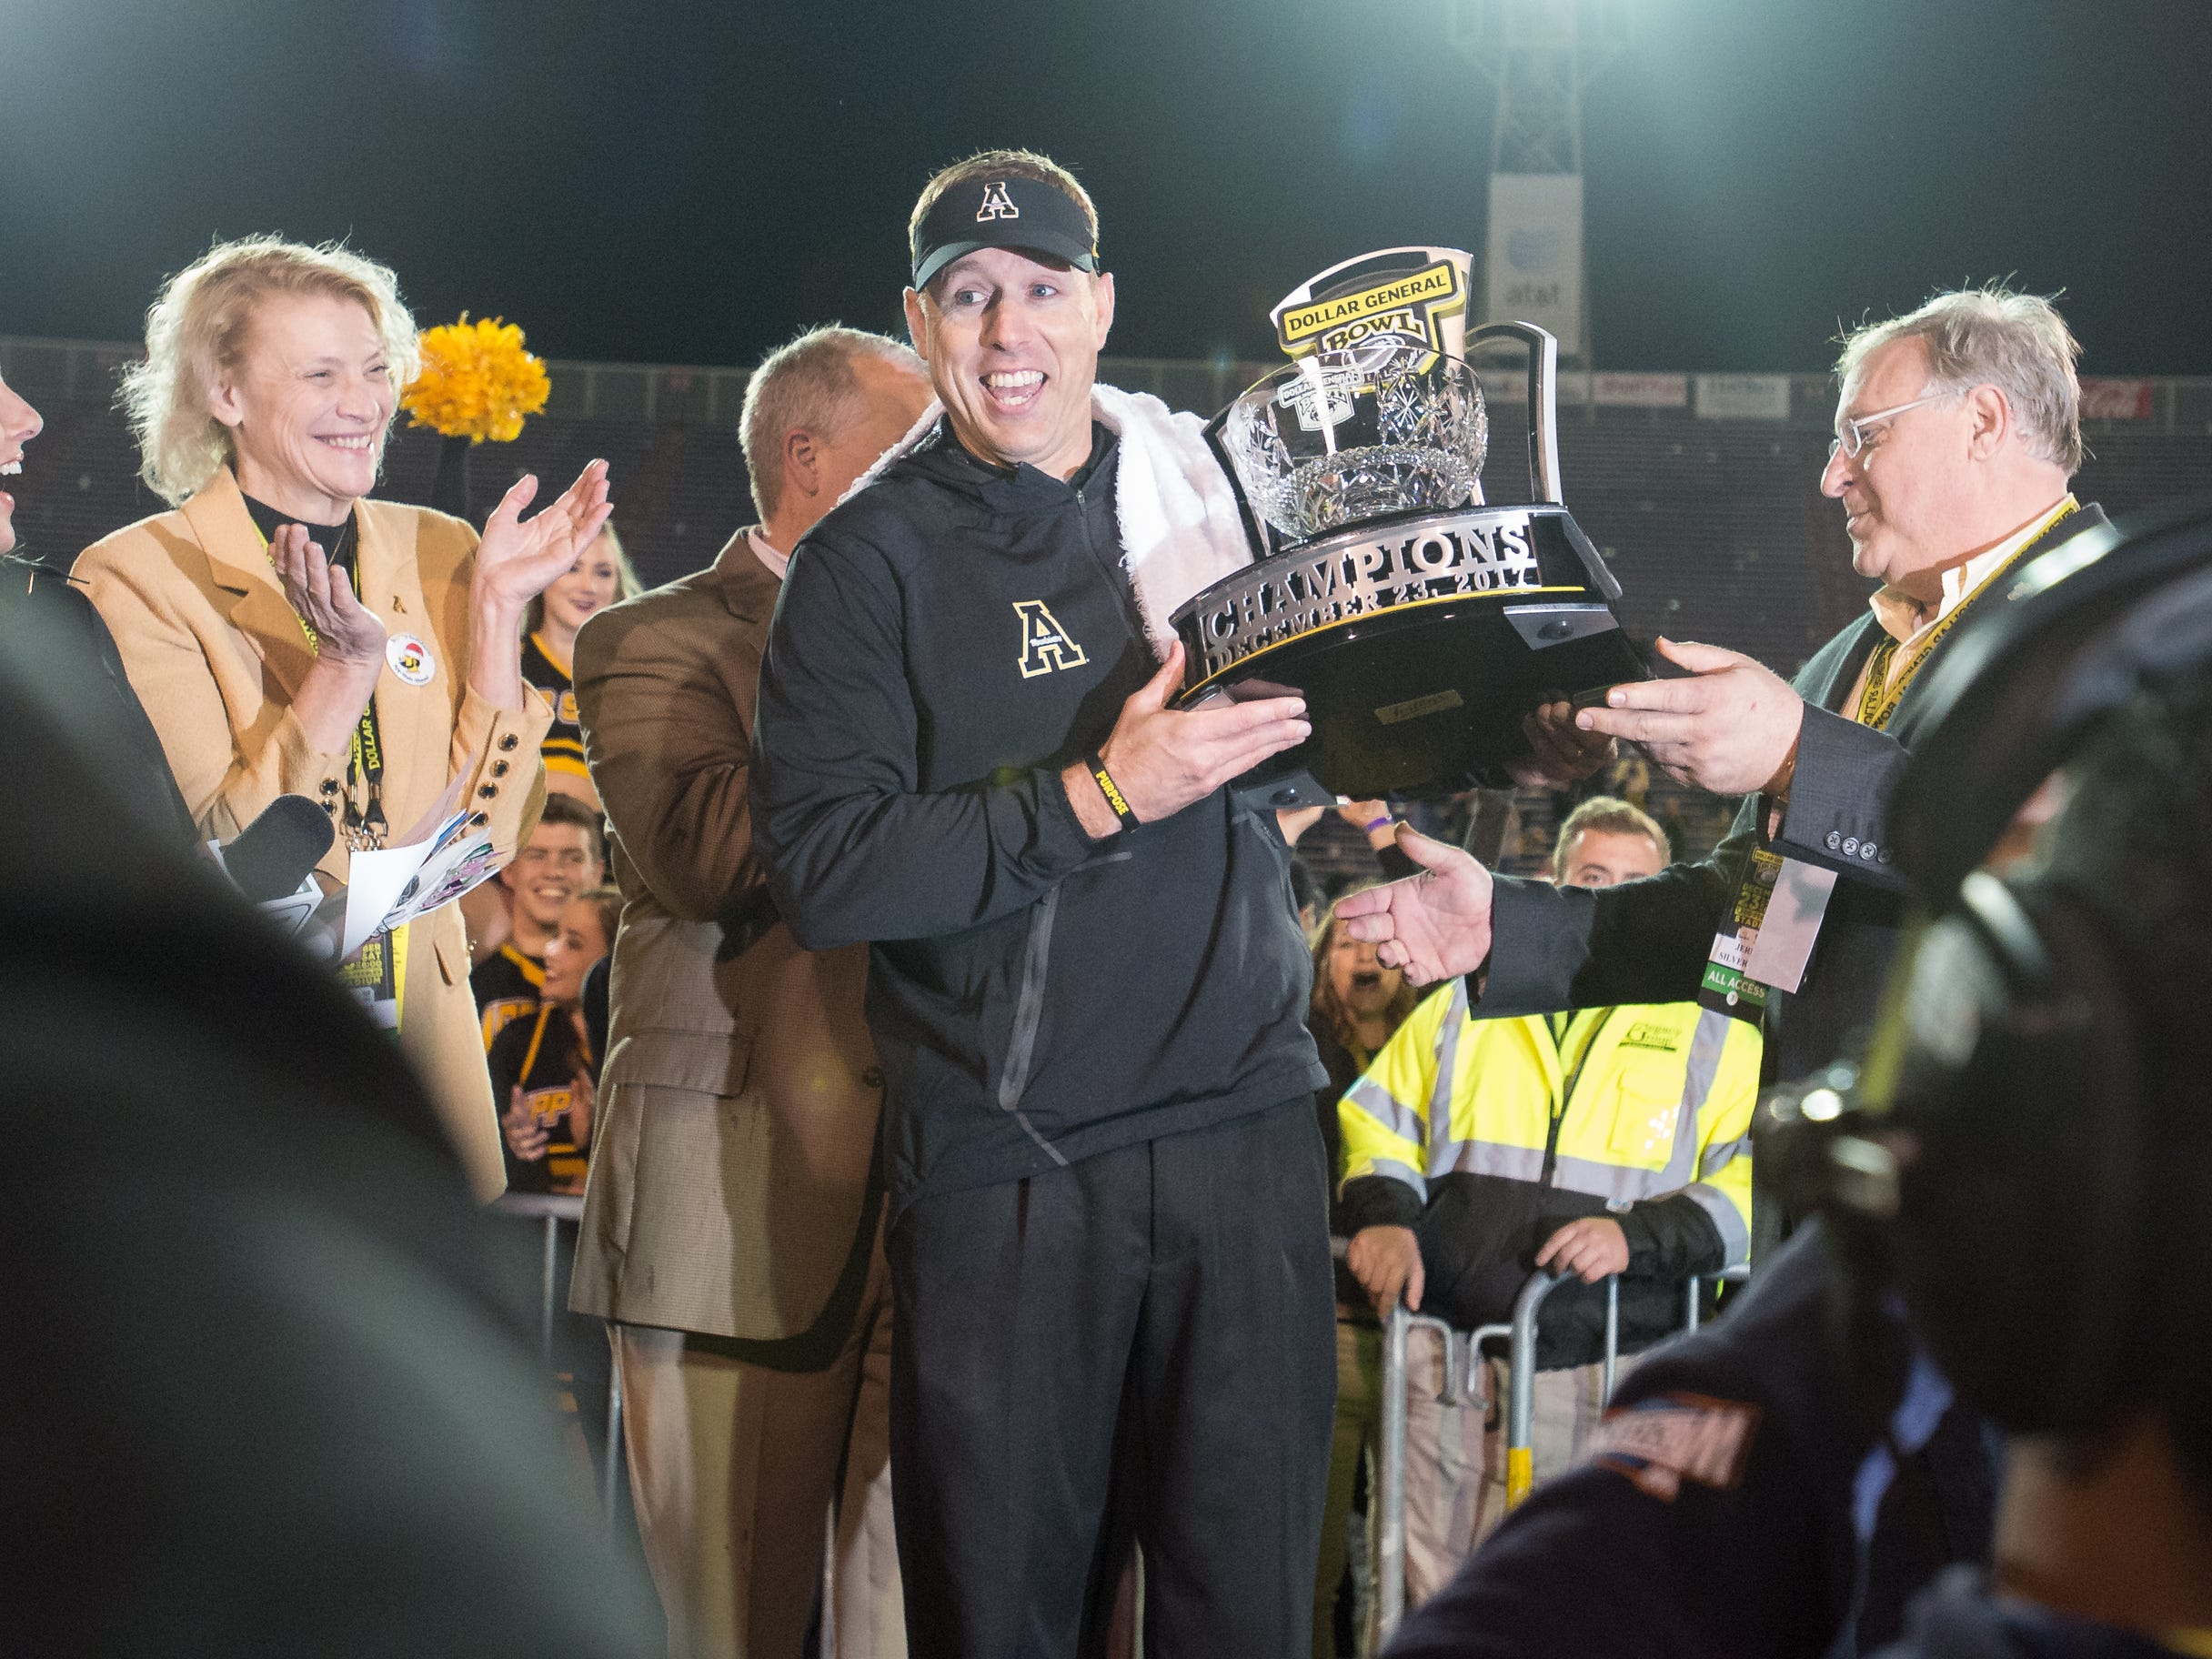 MOBILE, AL - DECEMBER 23: Head coach Scott Satterfield of the Appalachian State Mountaineers holds the Dollar General Trophy after defeating the Toledo Rockets on December 23, 2017 at Ladd-Peebles Stadium in Mobile, Alabama. (Photo by Michael Chang/Getty Images)